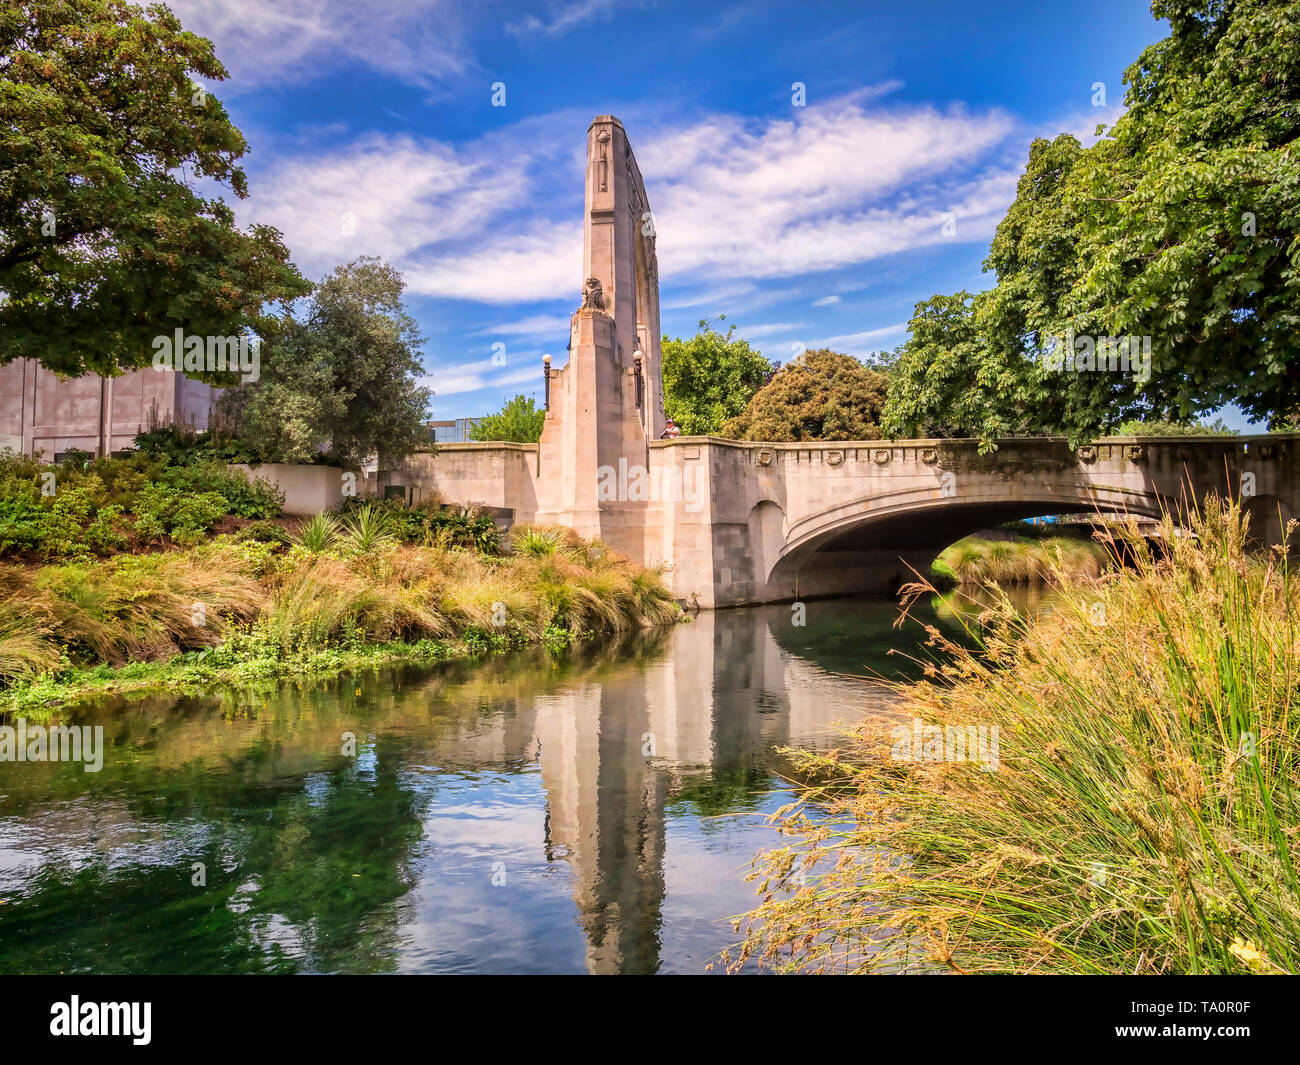 The Bridge of Remembrance and Cashel Street Bridge in the centre of Christchurch, New Zealand, reflected in the River Avon. Stock Photo